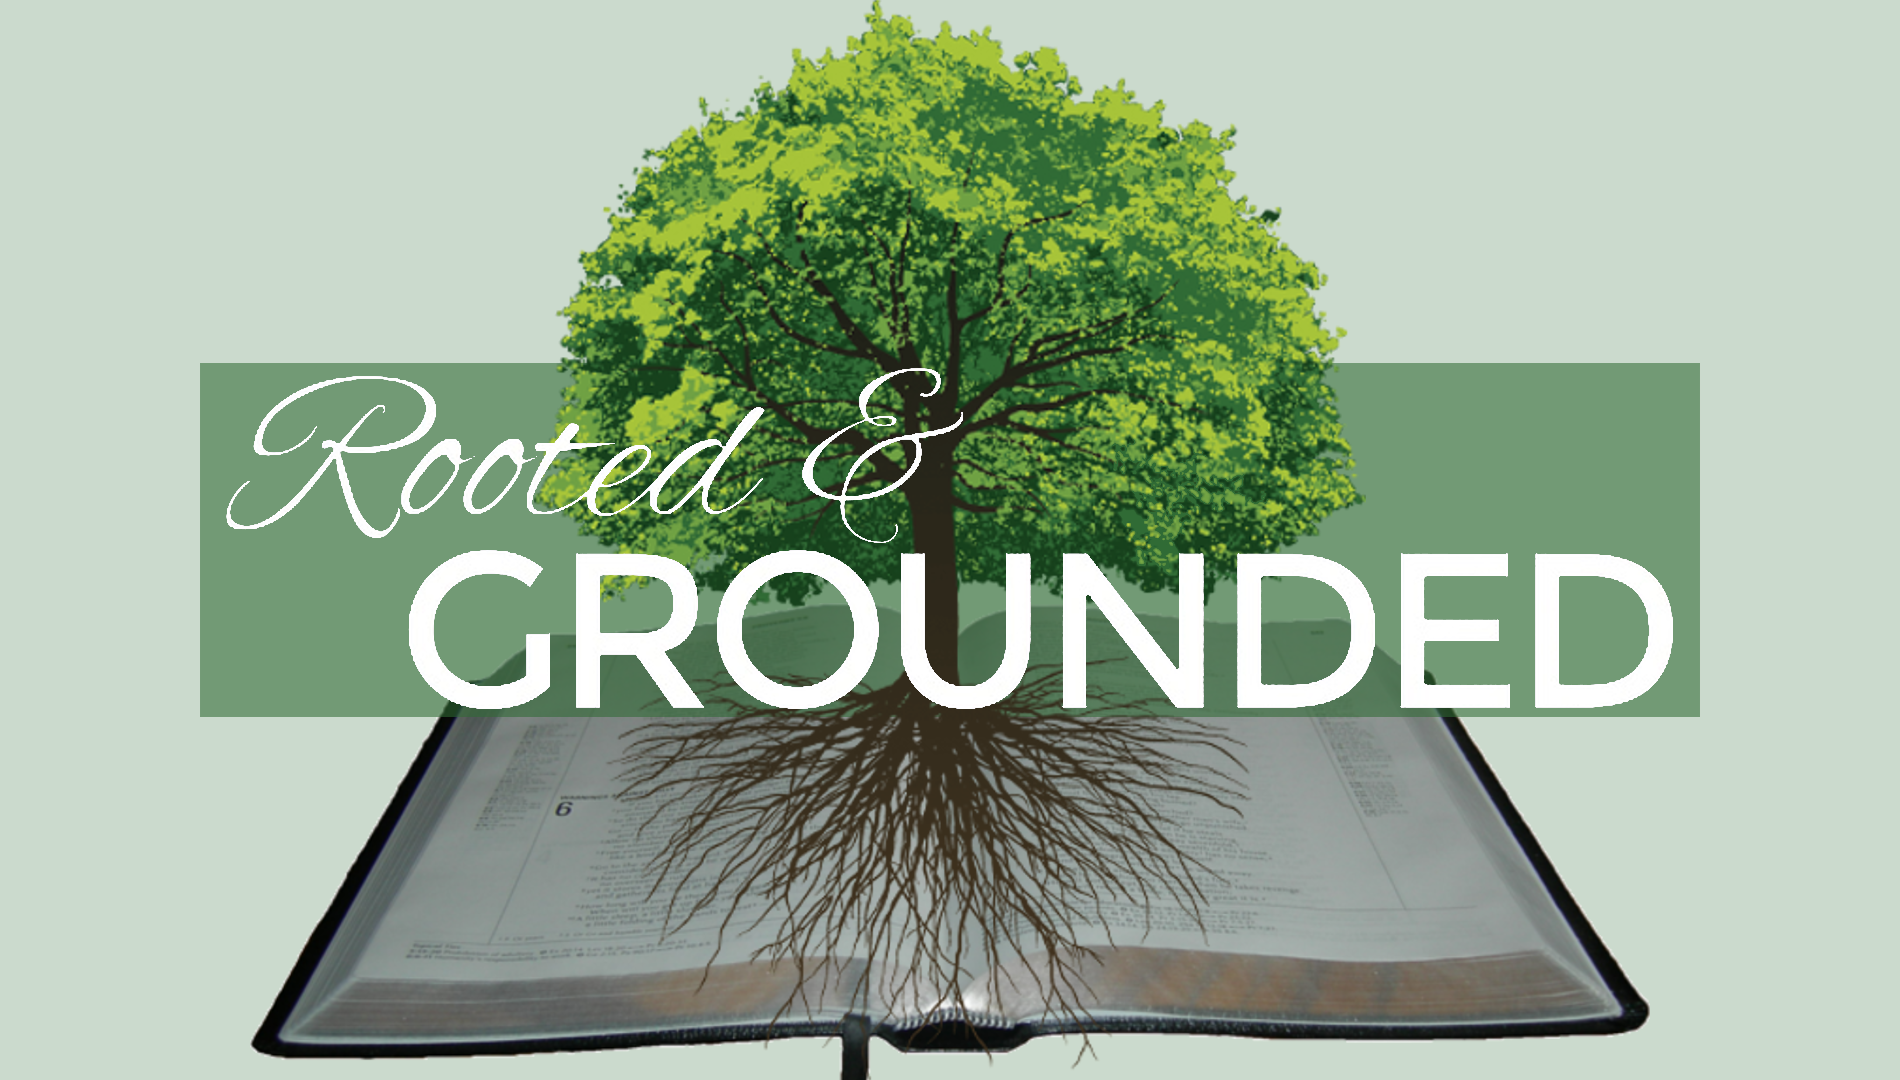 Rootedandgrounded green